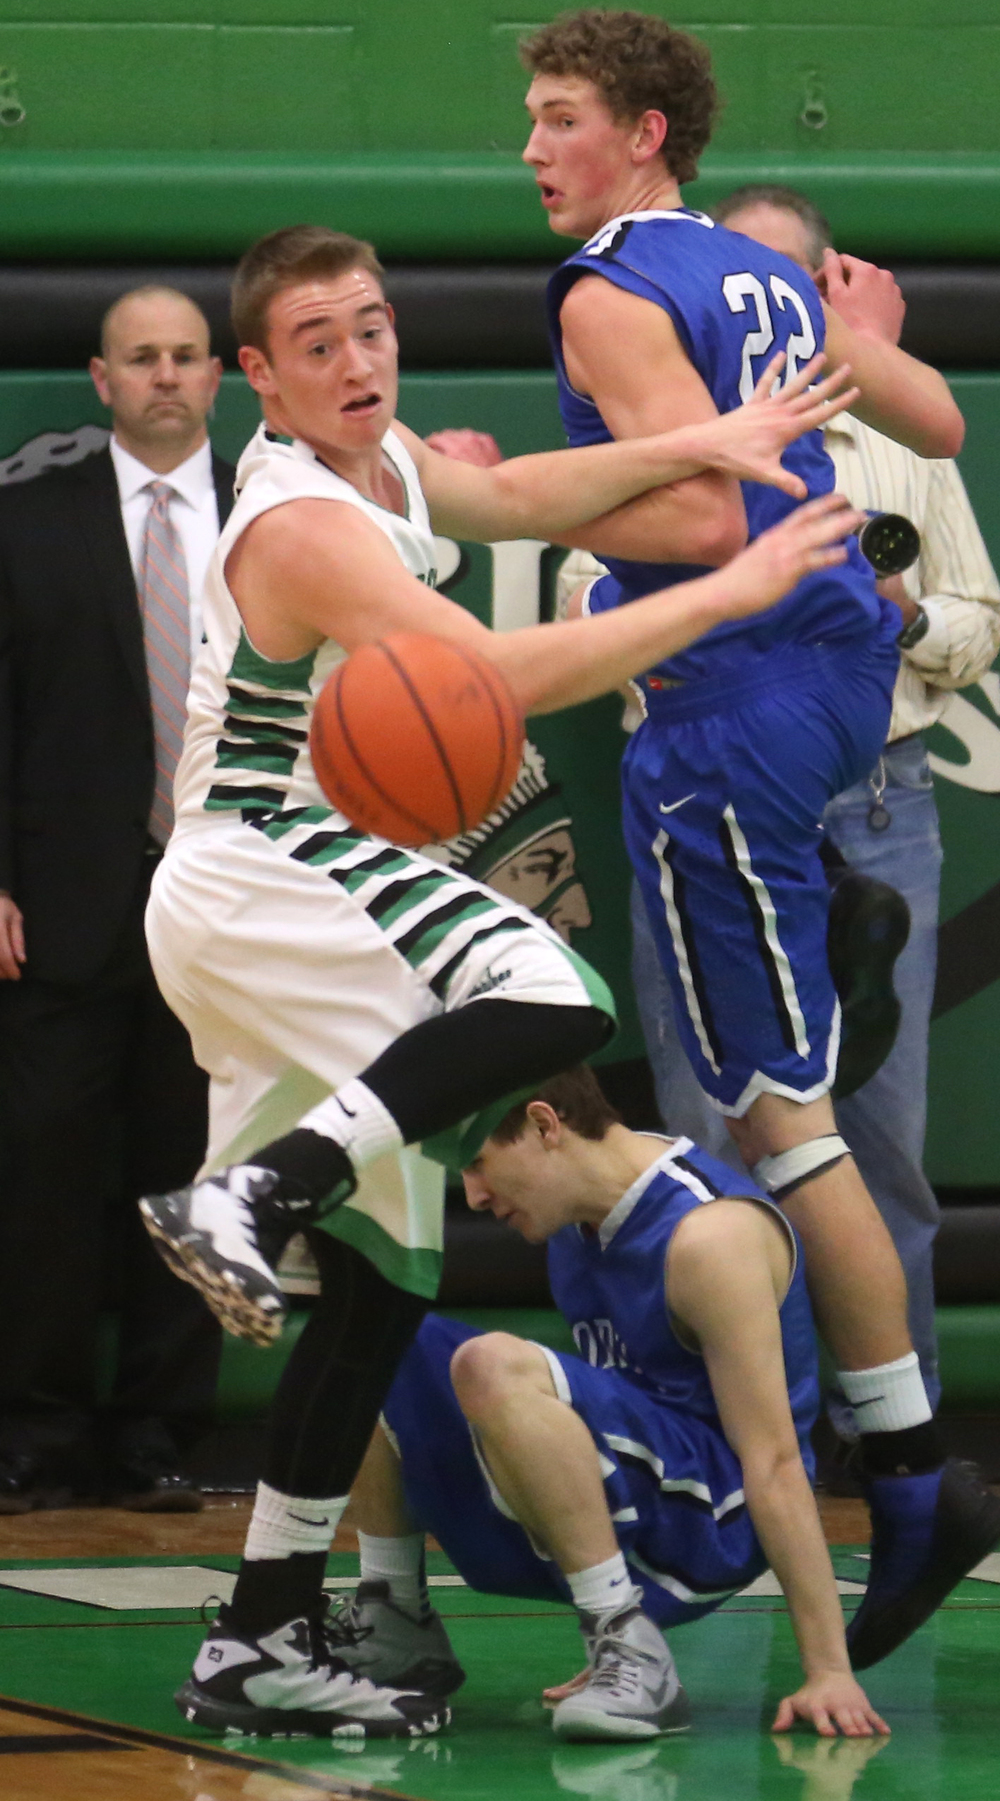 Athens player Eric Freer prepares to pursue a loose ball. Petersburg PORTA defeated Athens 64-32 in boys basketball action at Athen's gym in Athens on Tuesday evening, Feb. 3, 2015. David Spencer/The State Journal-Register